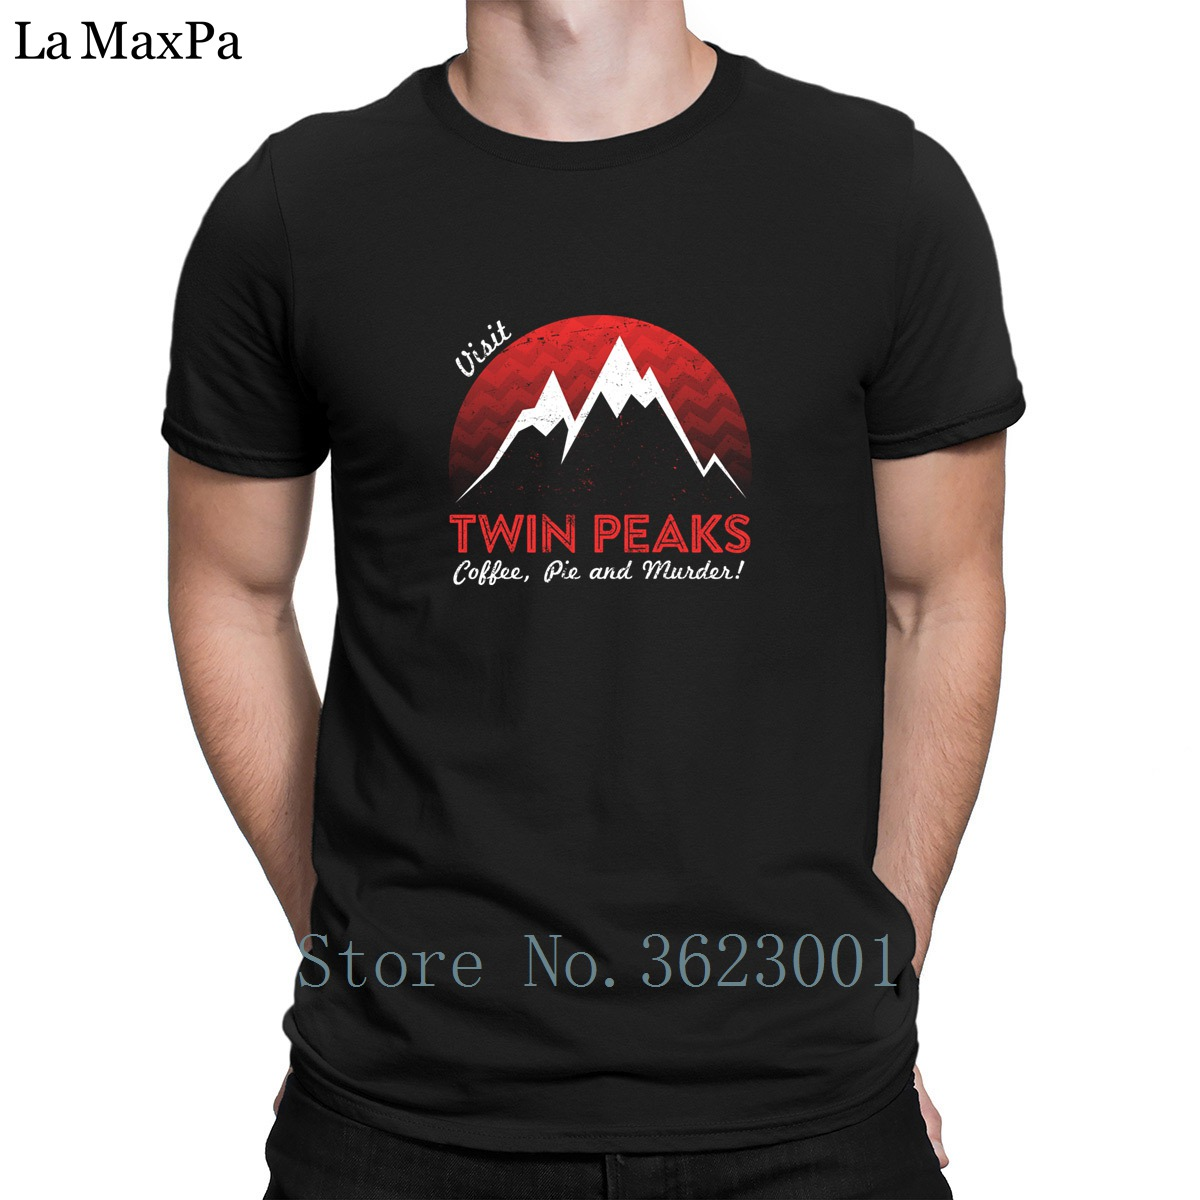 Creature Best Tee Shirt For Men Visit Twin Peaks T Shirt Awesome Cotton Men Tee Shirt Trend T-Shirt For Men Top Quality 2018